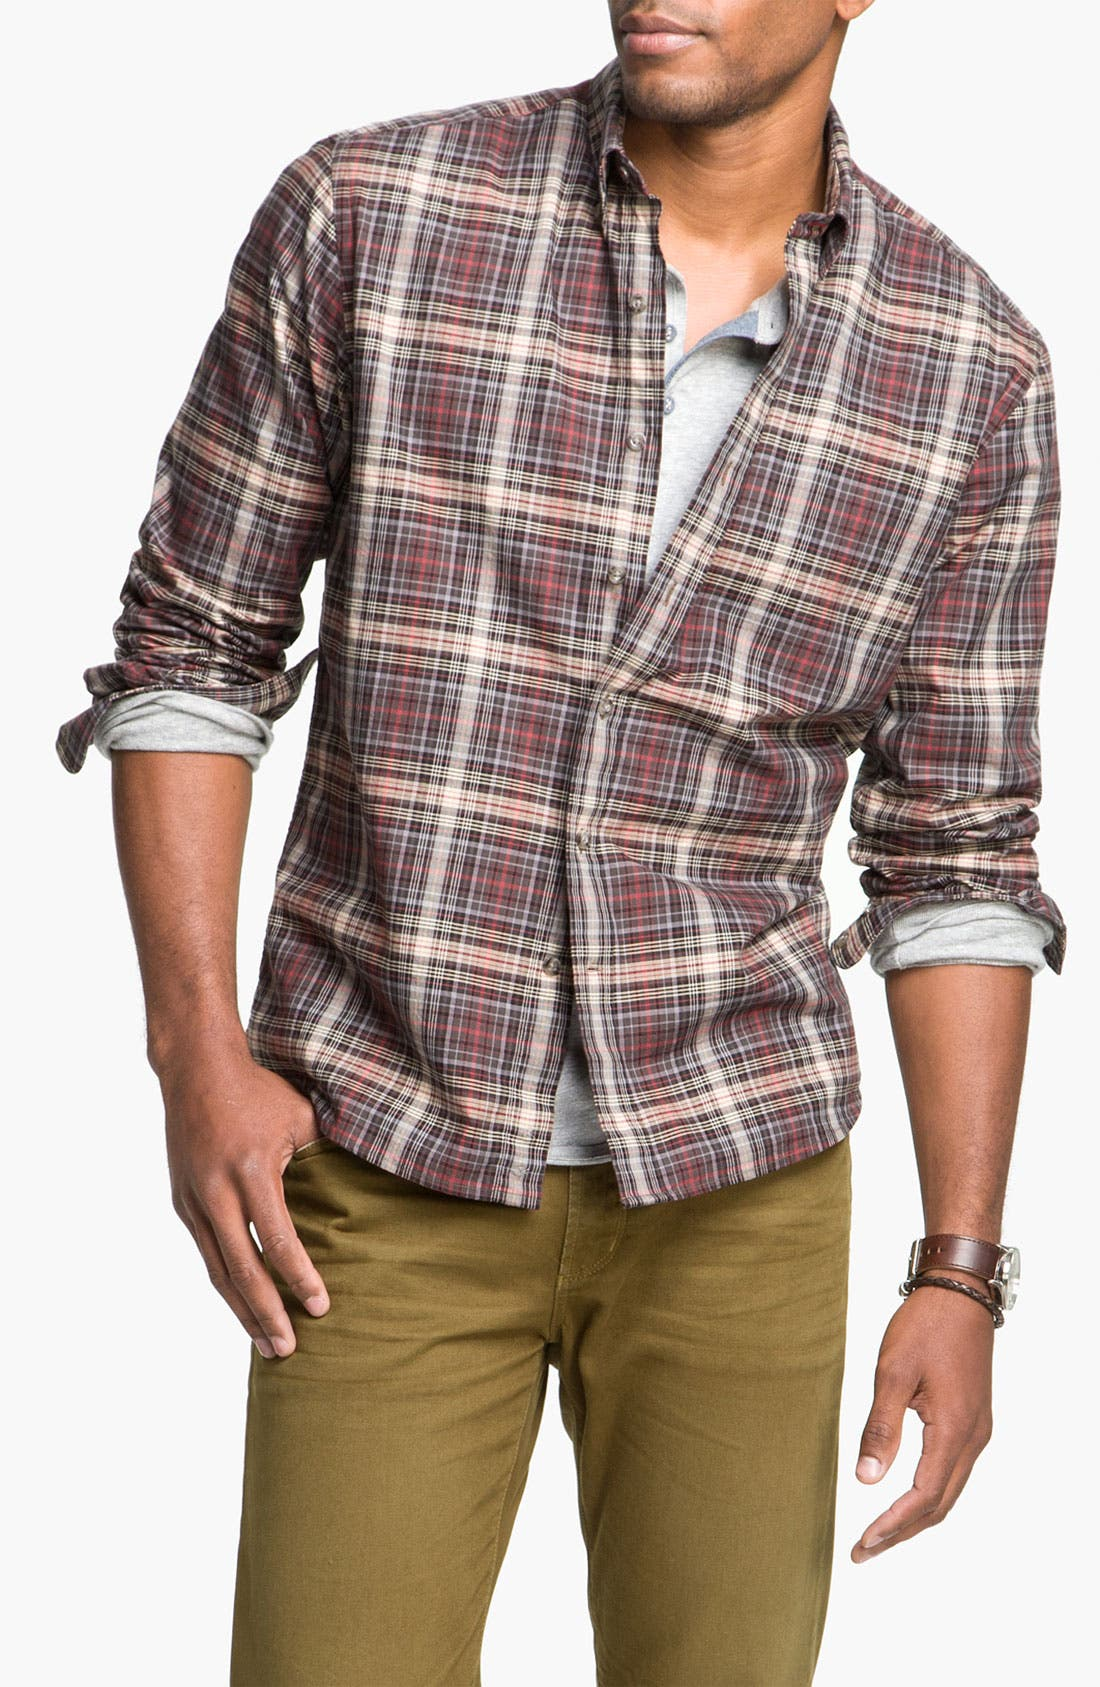 Alternate Image 1 Selected - Cutter & Buck 'McCrea' Plaid Woven Shirt (Big & Tall)